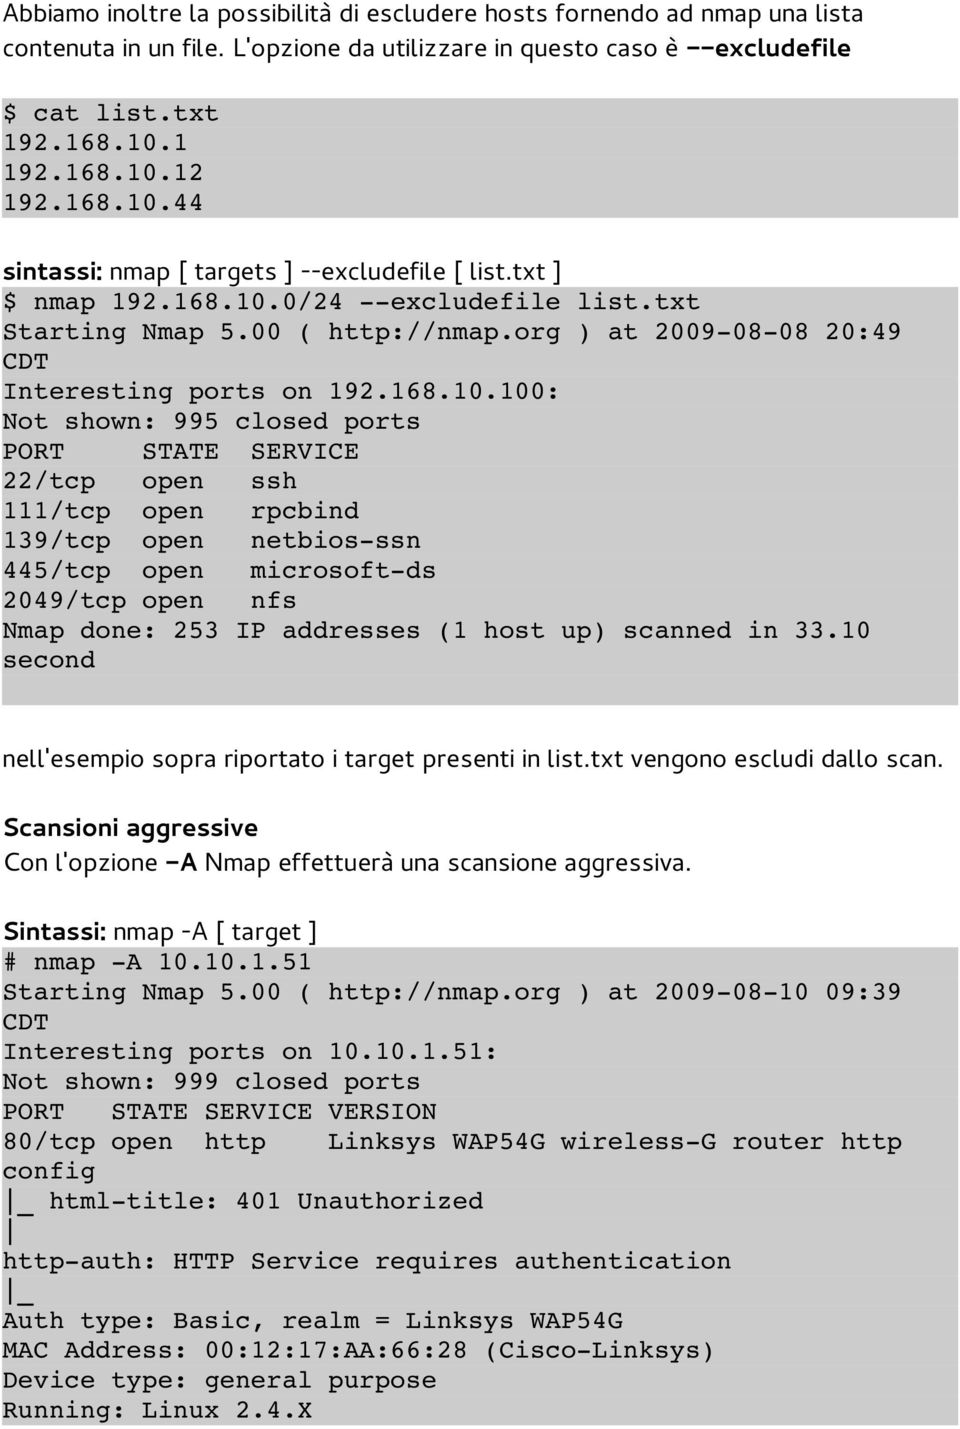 44 sintassi: nmap [ targets ] --excludefile [ list.txt ] $ nmap 192.0/24 excludefile list.txt Starting Nmap 5.00 ( http://nmap.org ) at 2009 08 08 20:49 Interesting ports on 192.